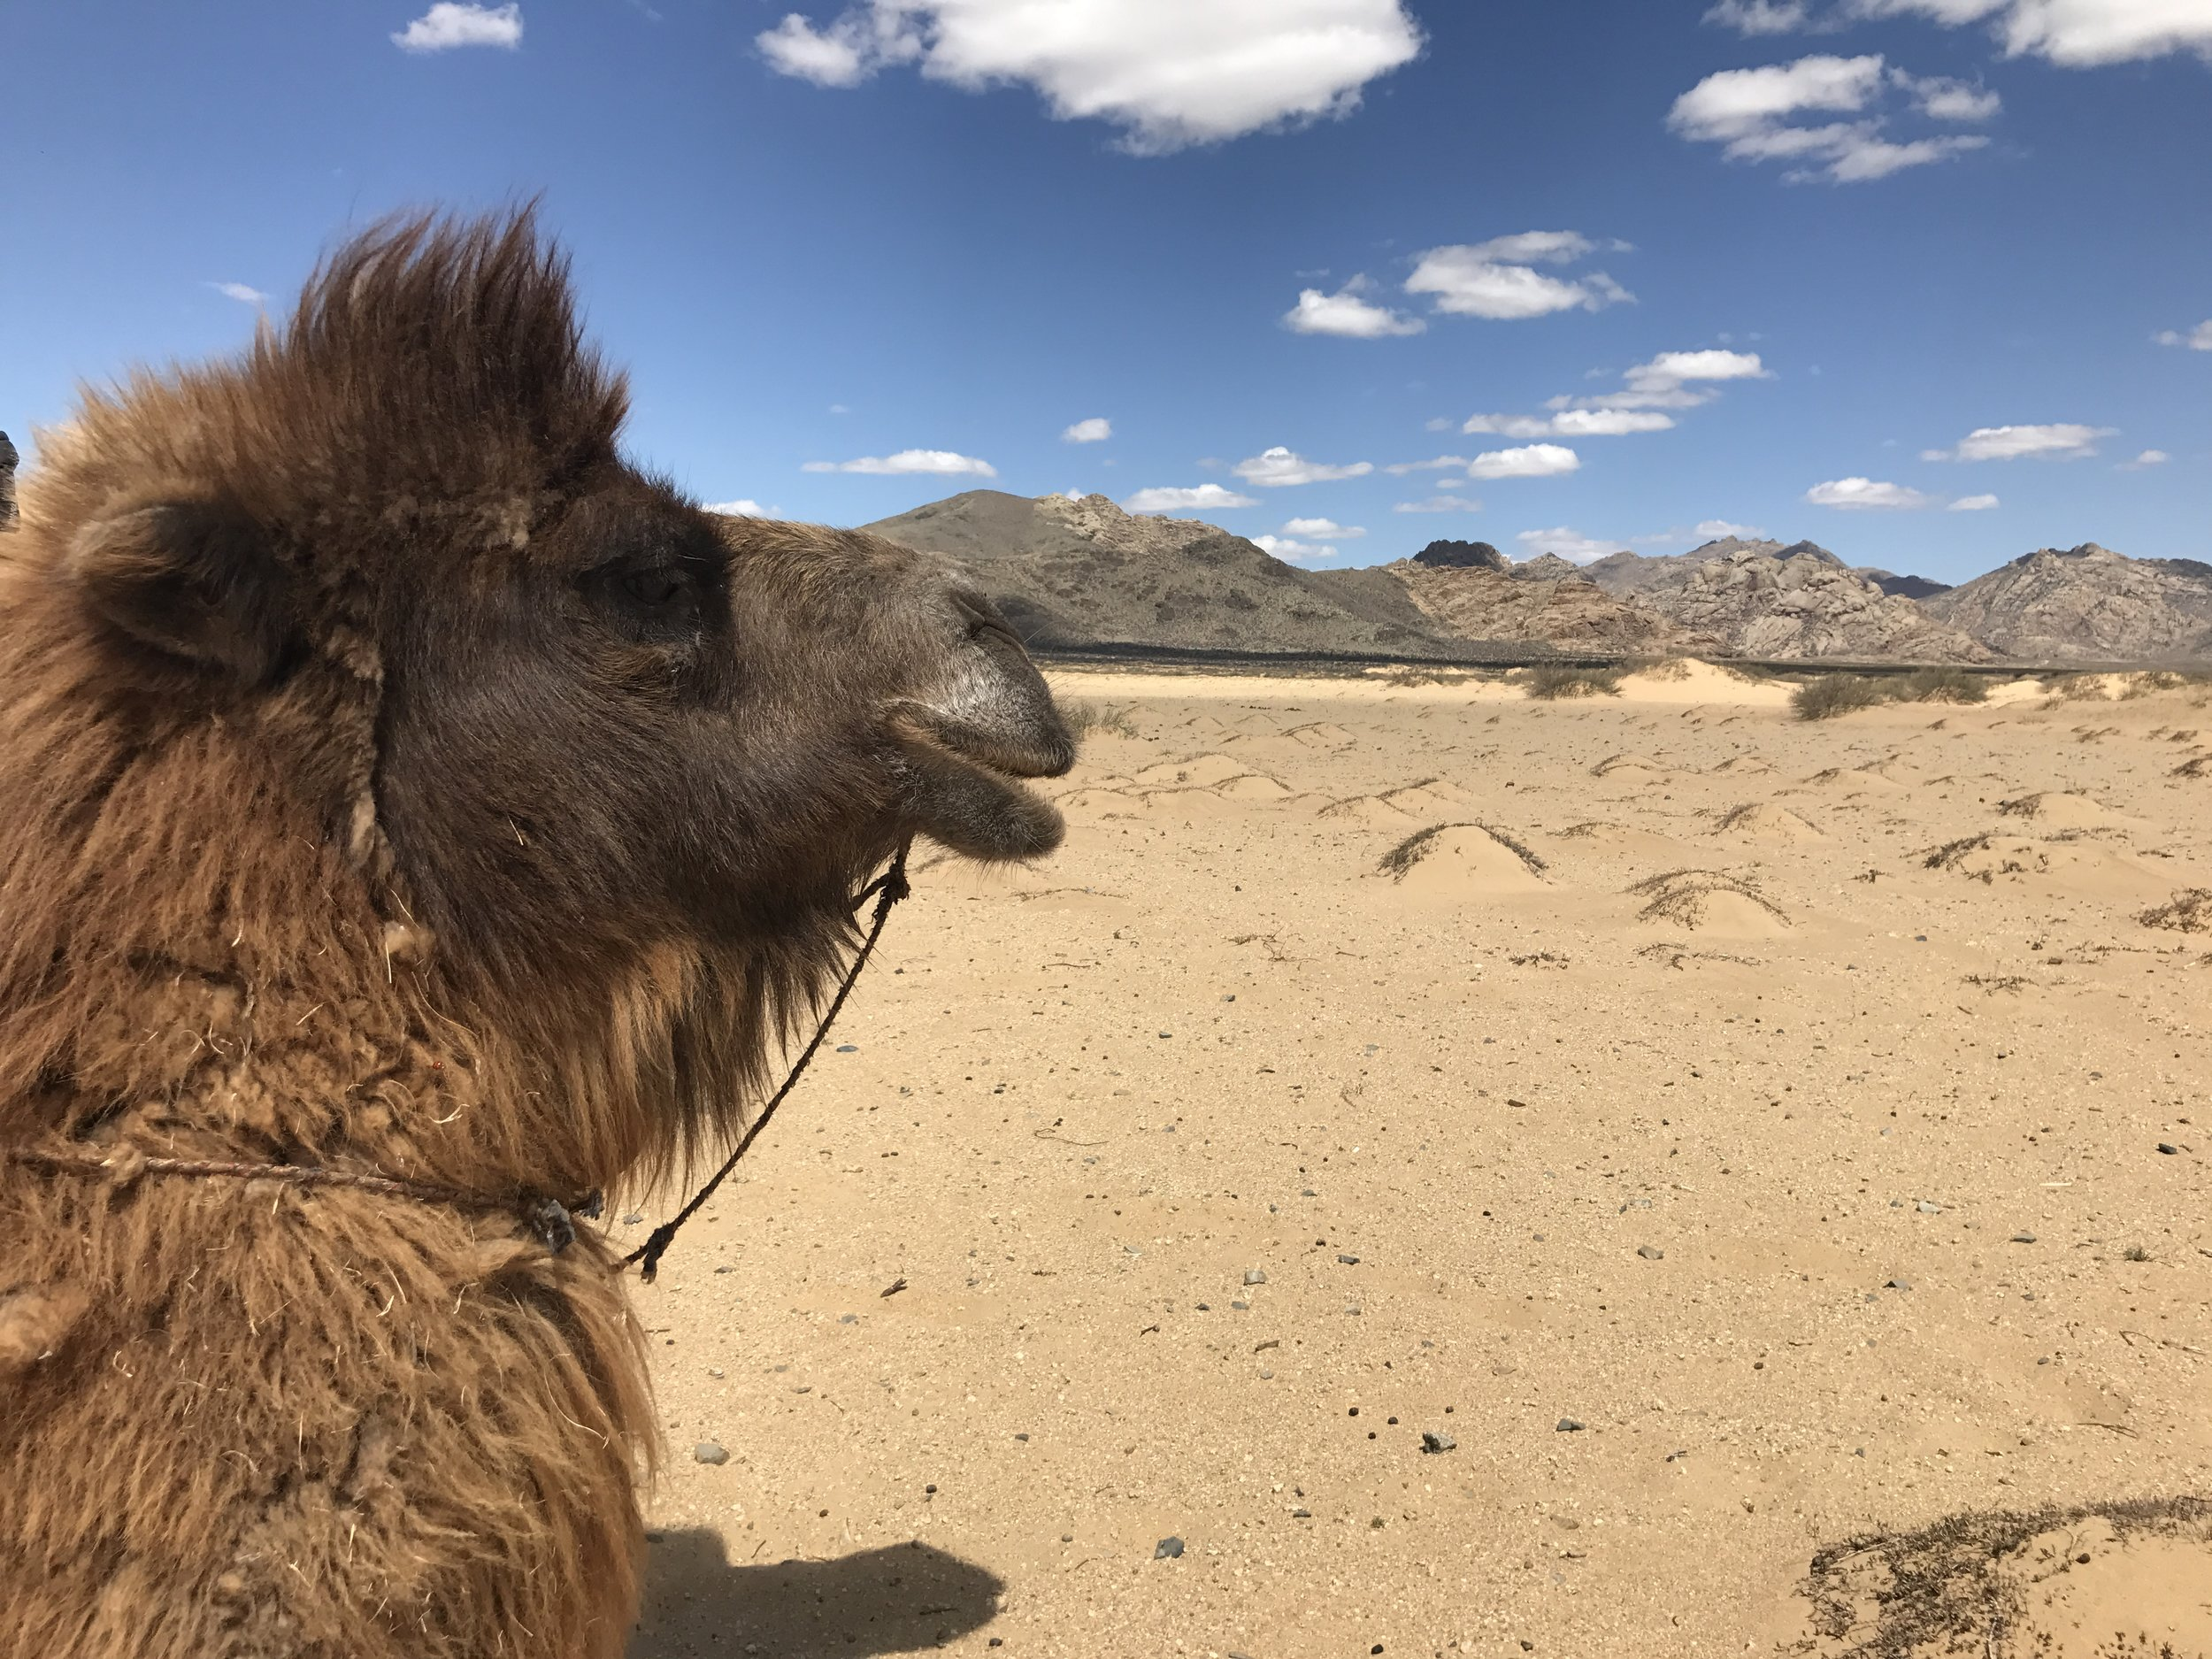 Bactrian camels are strange and wonderful animals!